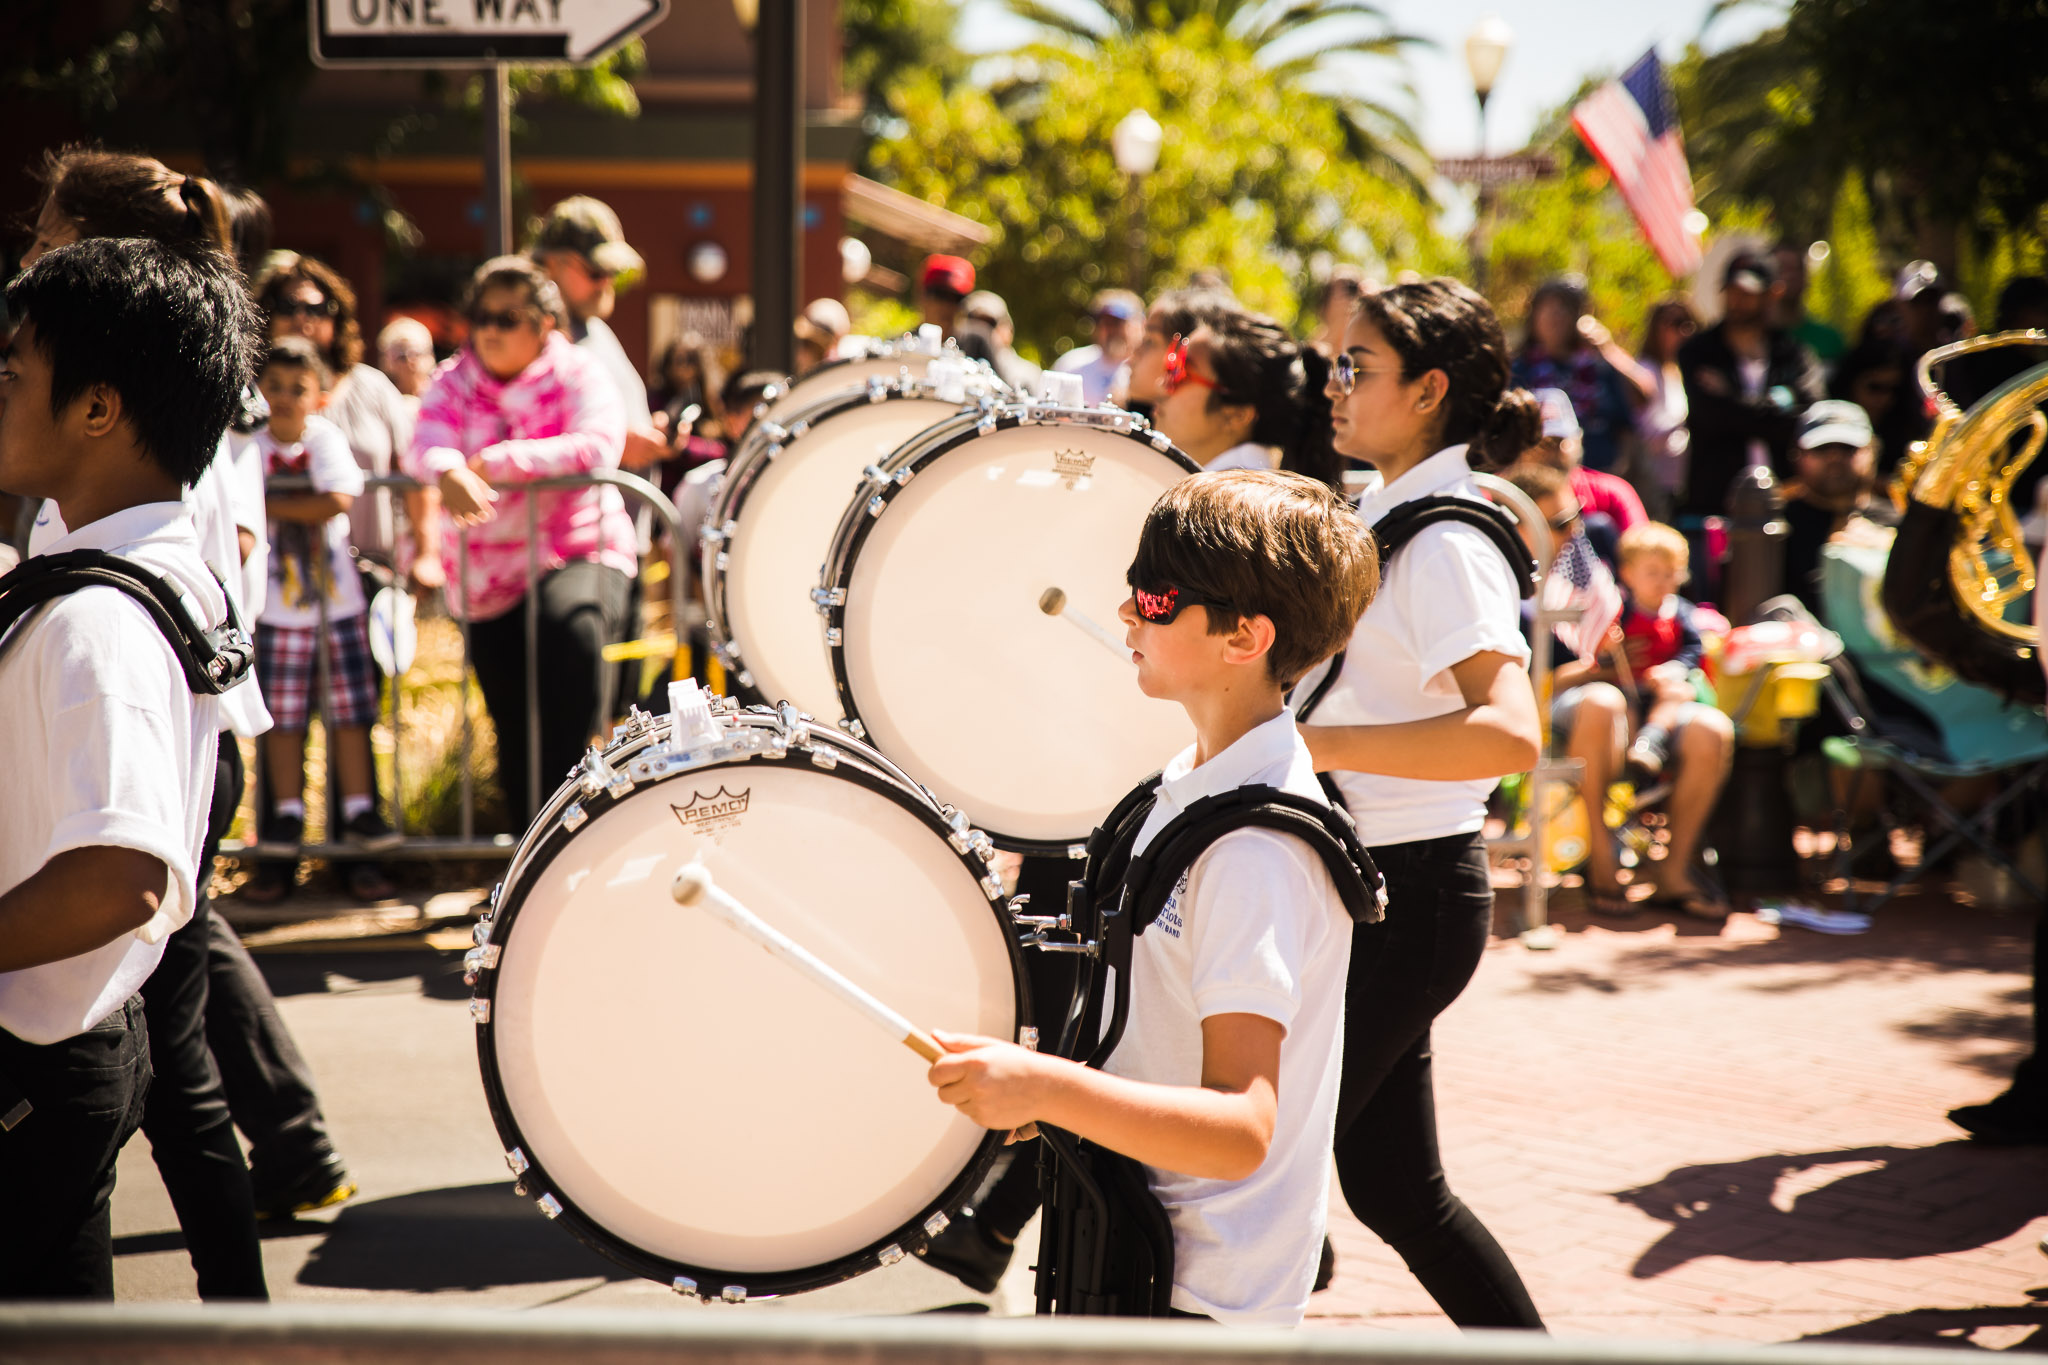 Archer_Inspired_Photography_Morgan_Hill_California_4th_of_july_parade-104.jpg